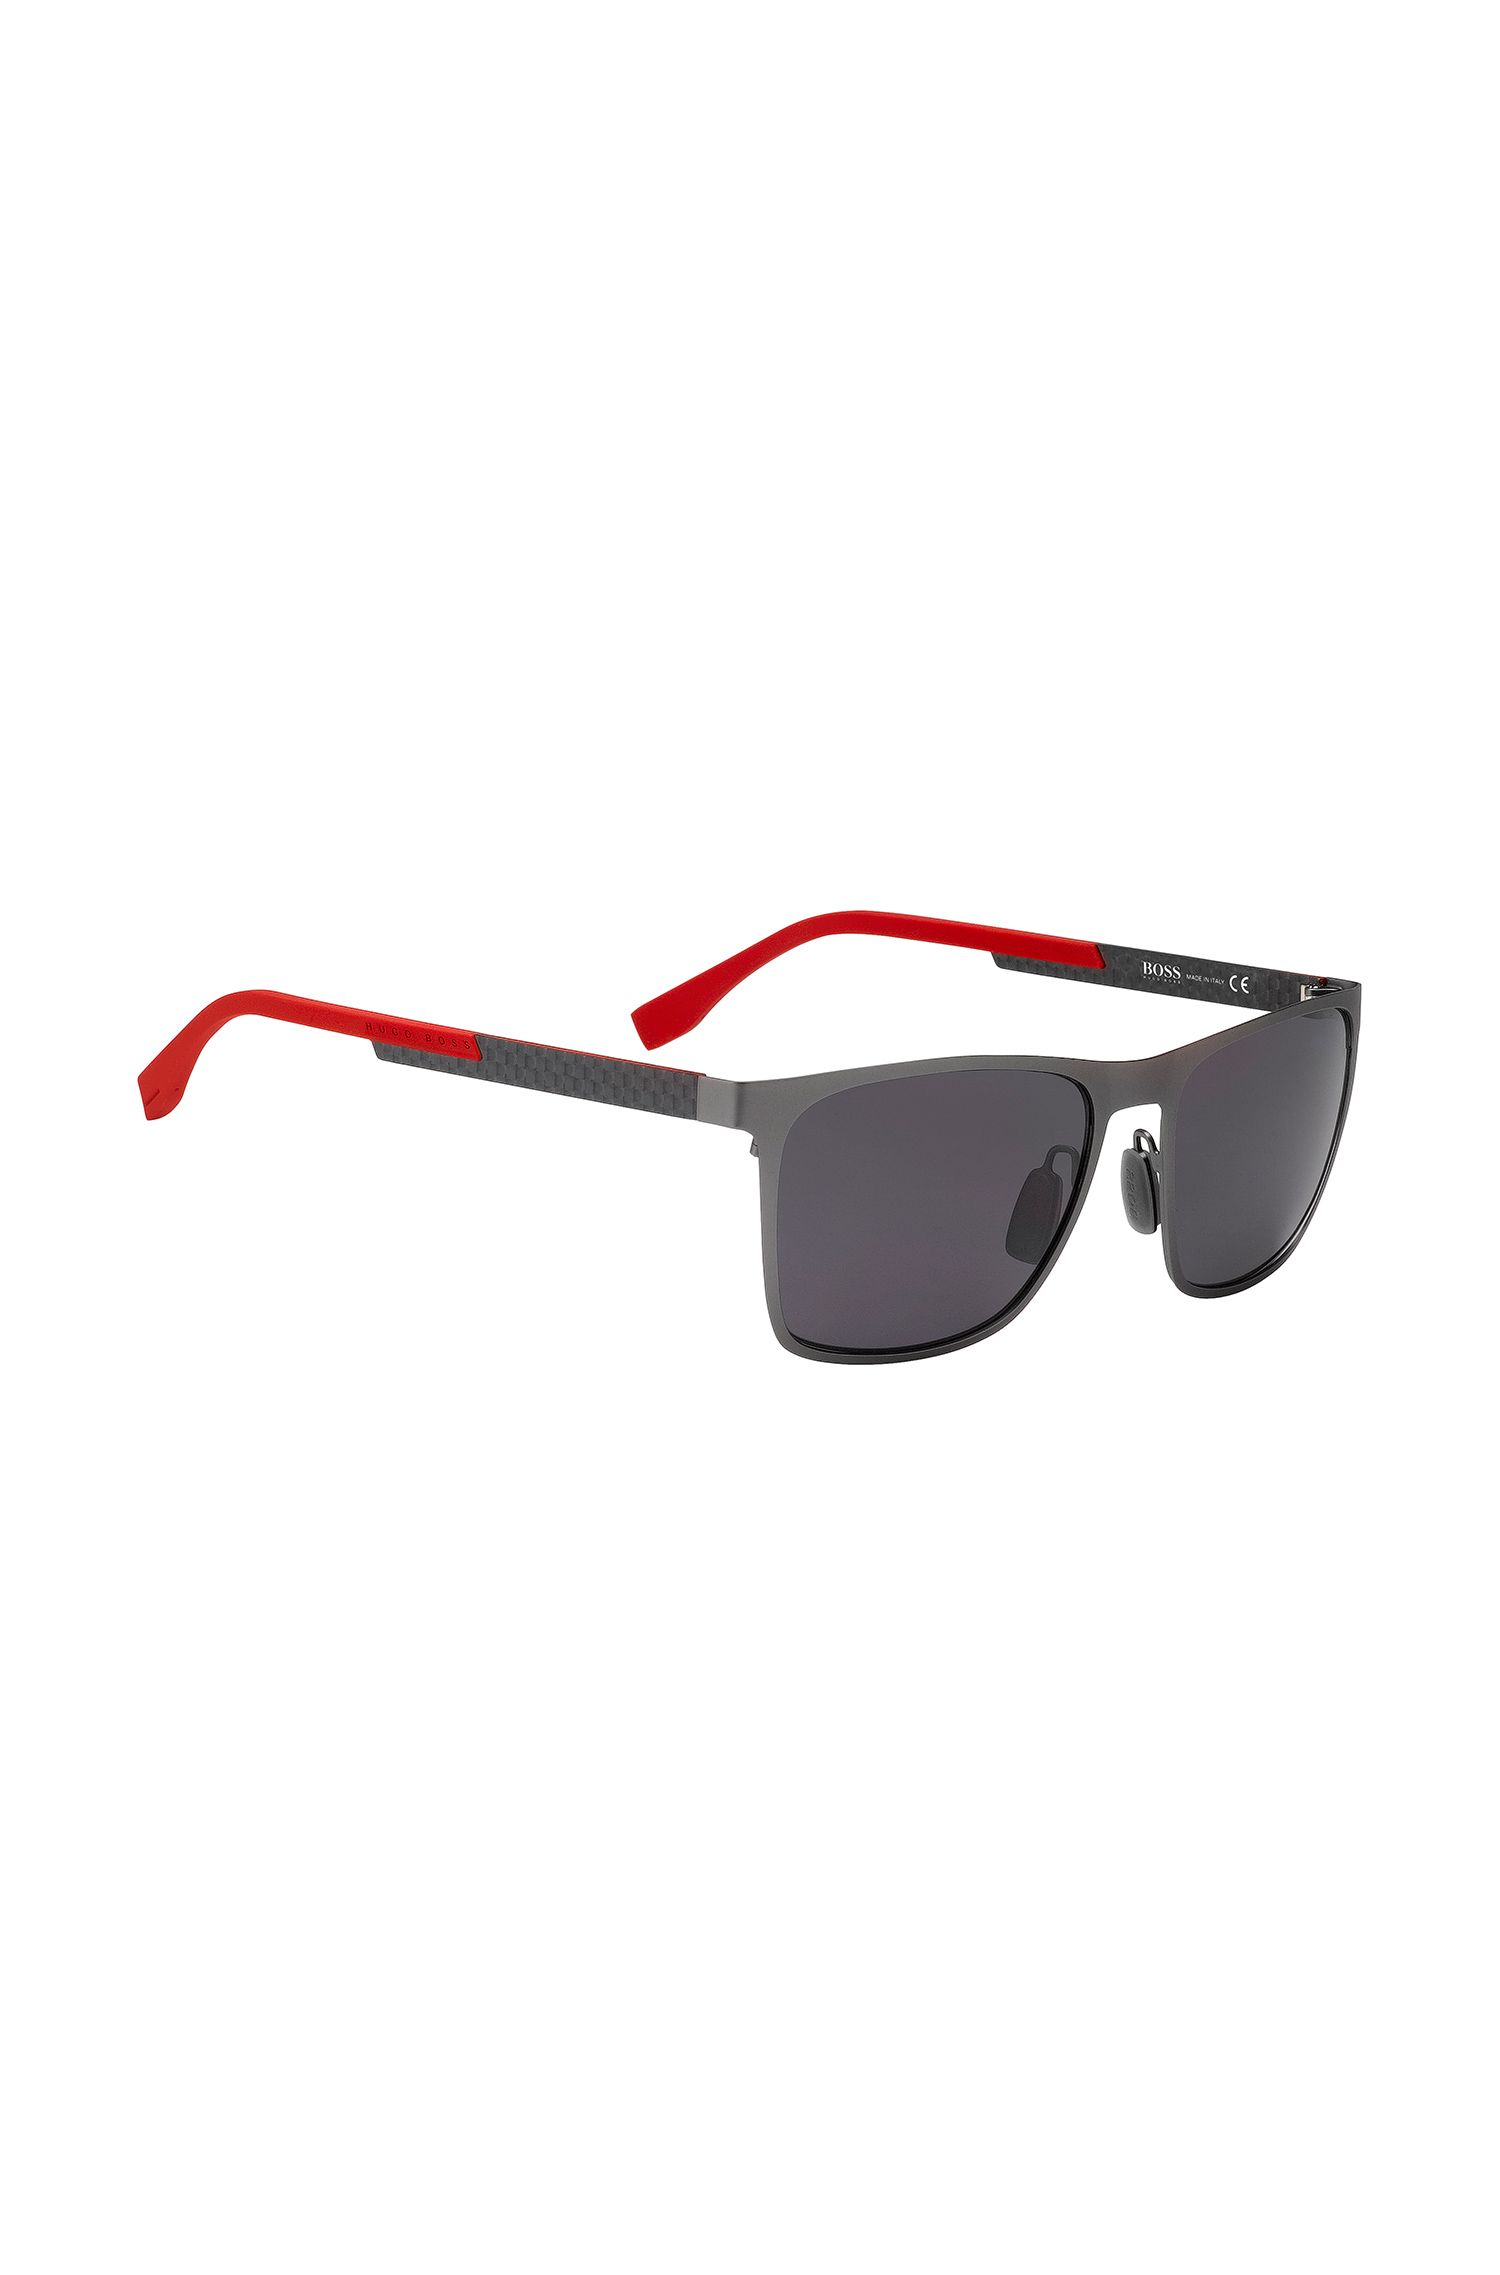 Sunglasses: 'BOSS 0732/S'